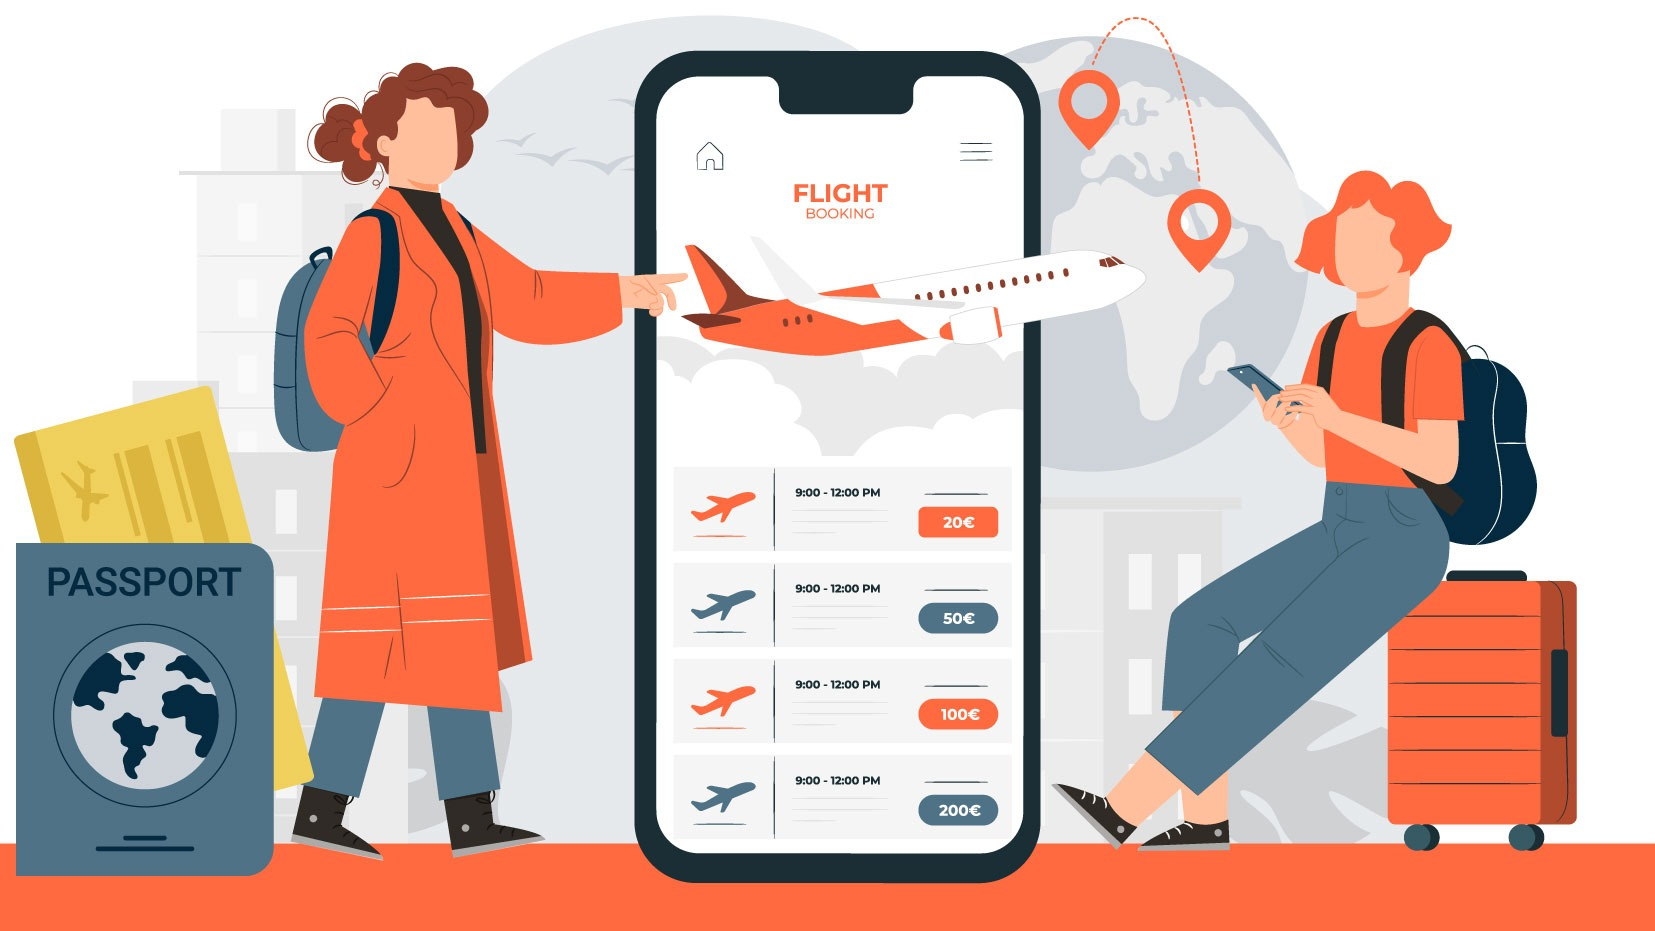 A Personalized Flight: How Virgin Atlantic Uses Adobe Experience Manager to Tailor its Content